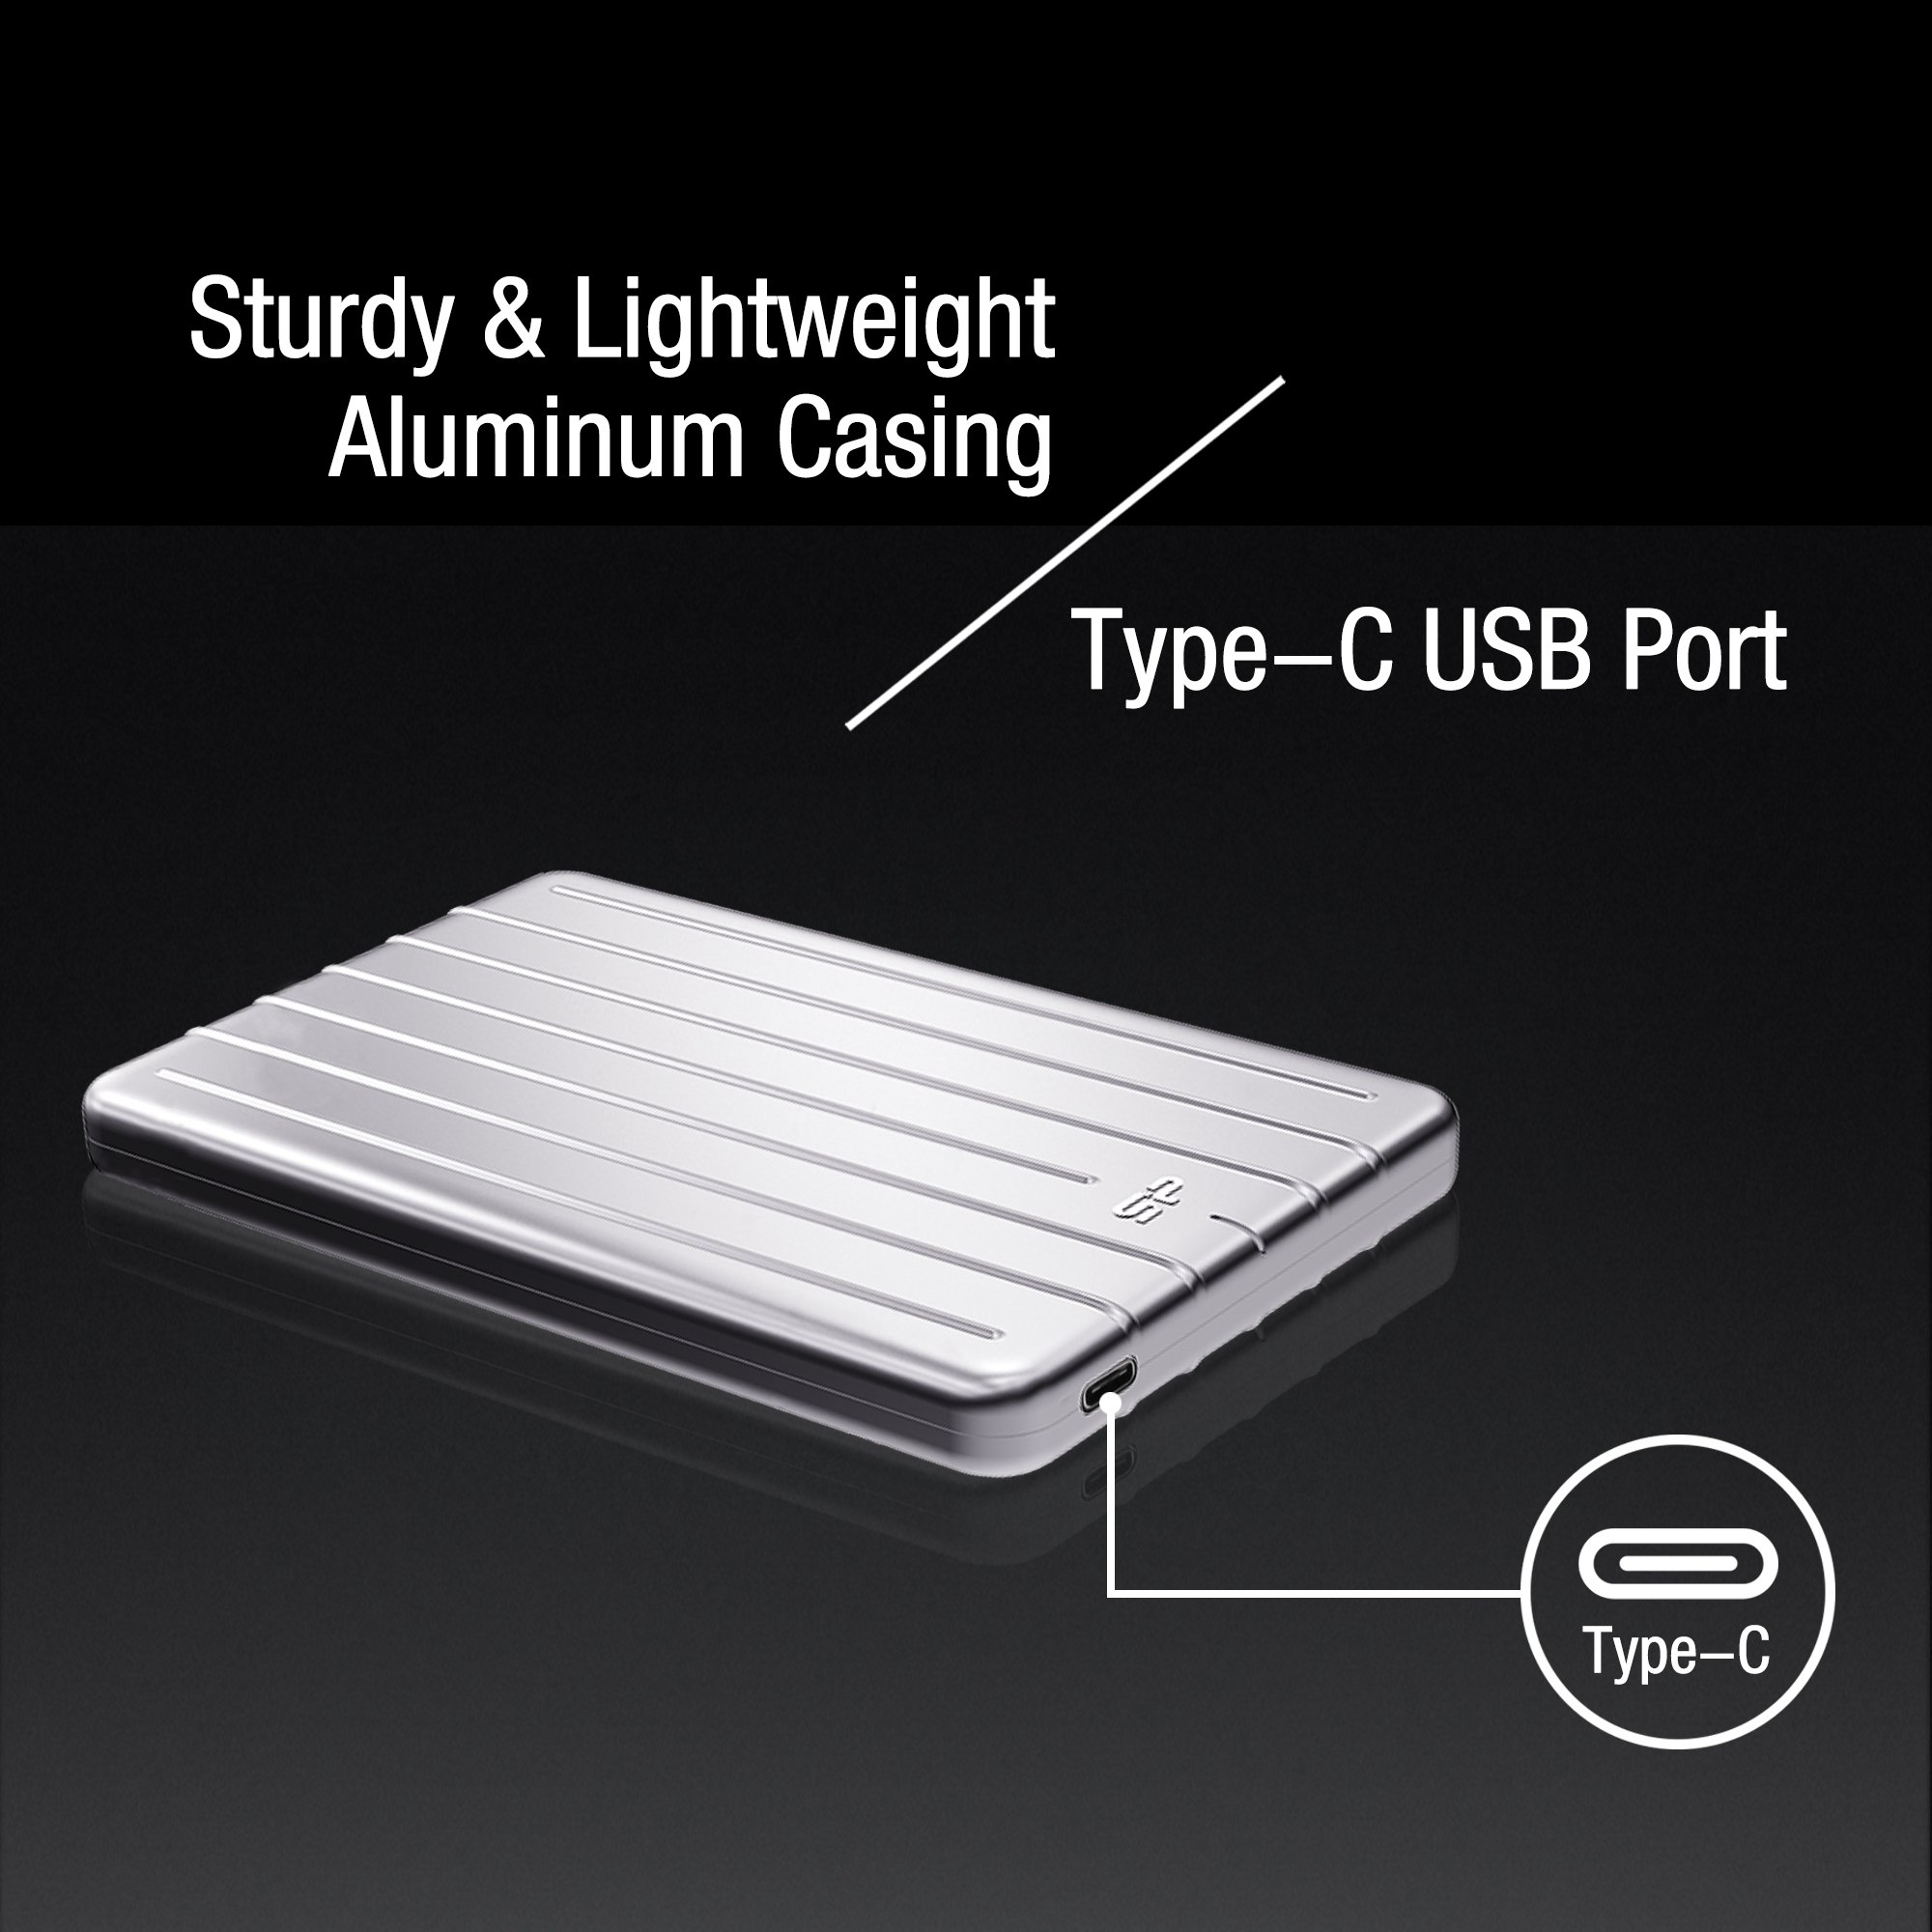 Silicon Power SU010TBPHDA75S3SAE 1TB Ultra Slim Rugged Armor A75 Shockproof USB 3.0 (USB 3.1 Gen 1) 2.5'' Portable External Hard Drive, Silver by Silicon Power (Image #4)